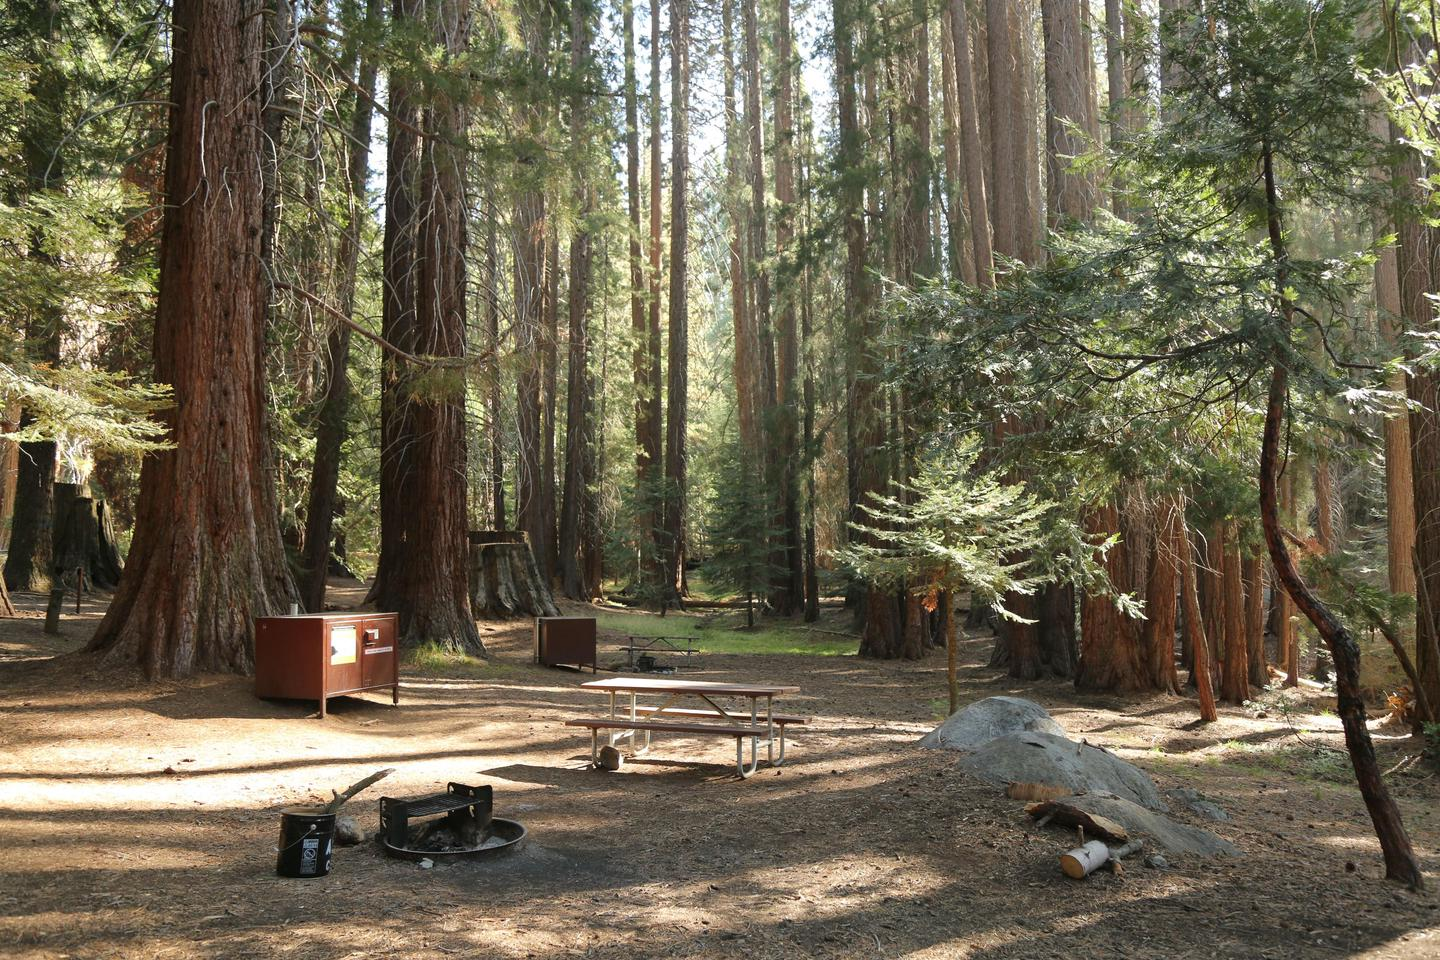 CampsitesAtwell Mill's campsites are in a shady sequoia grove.